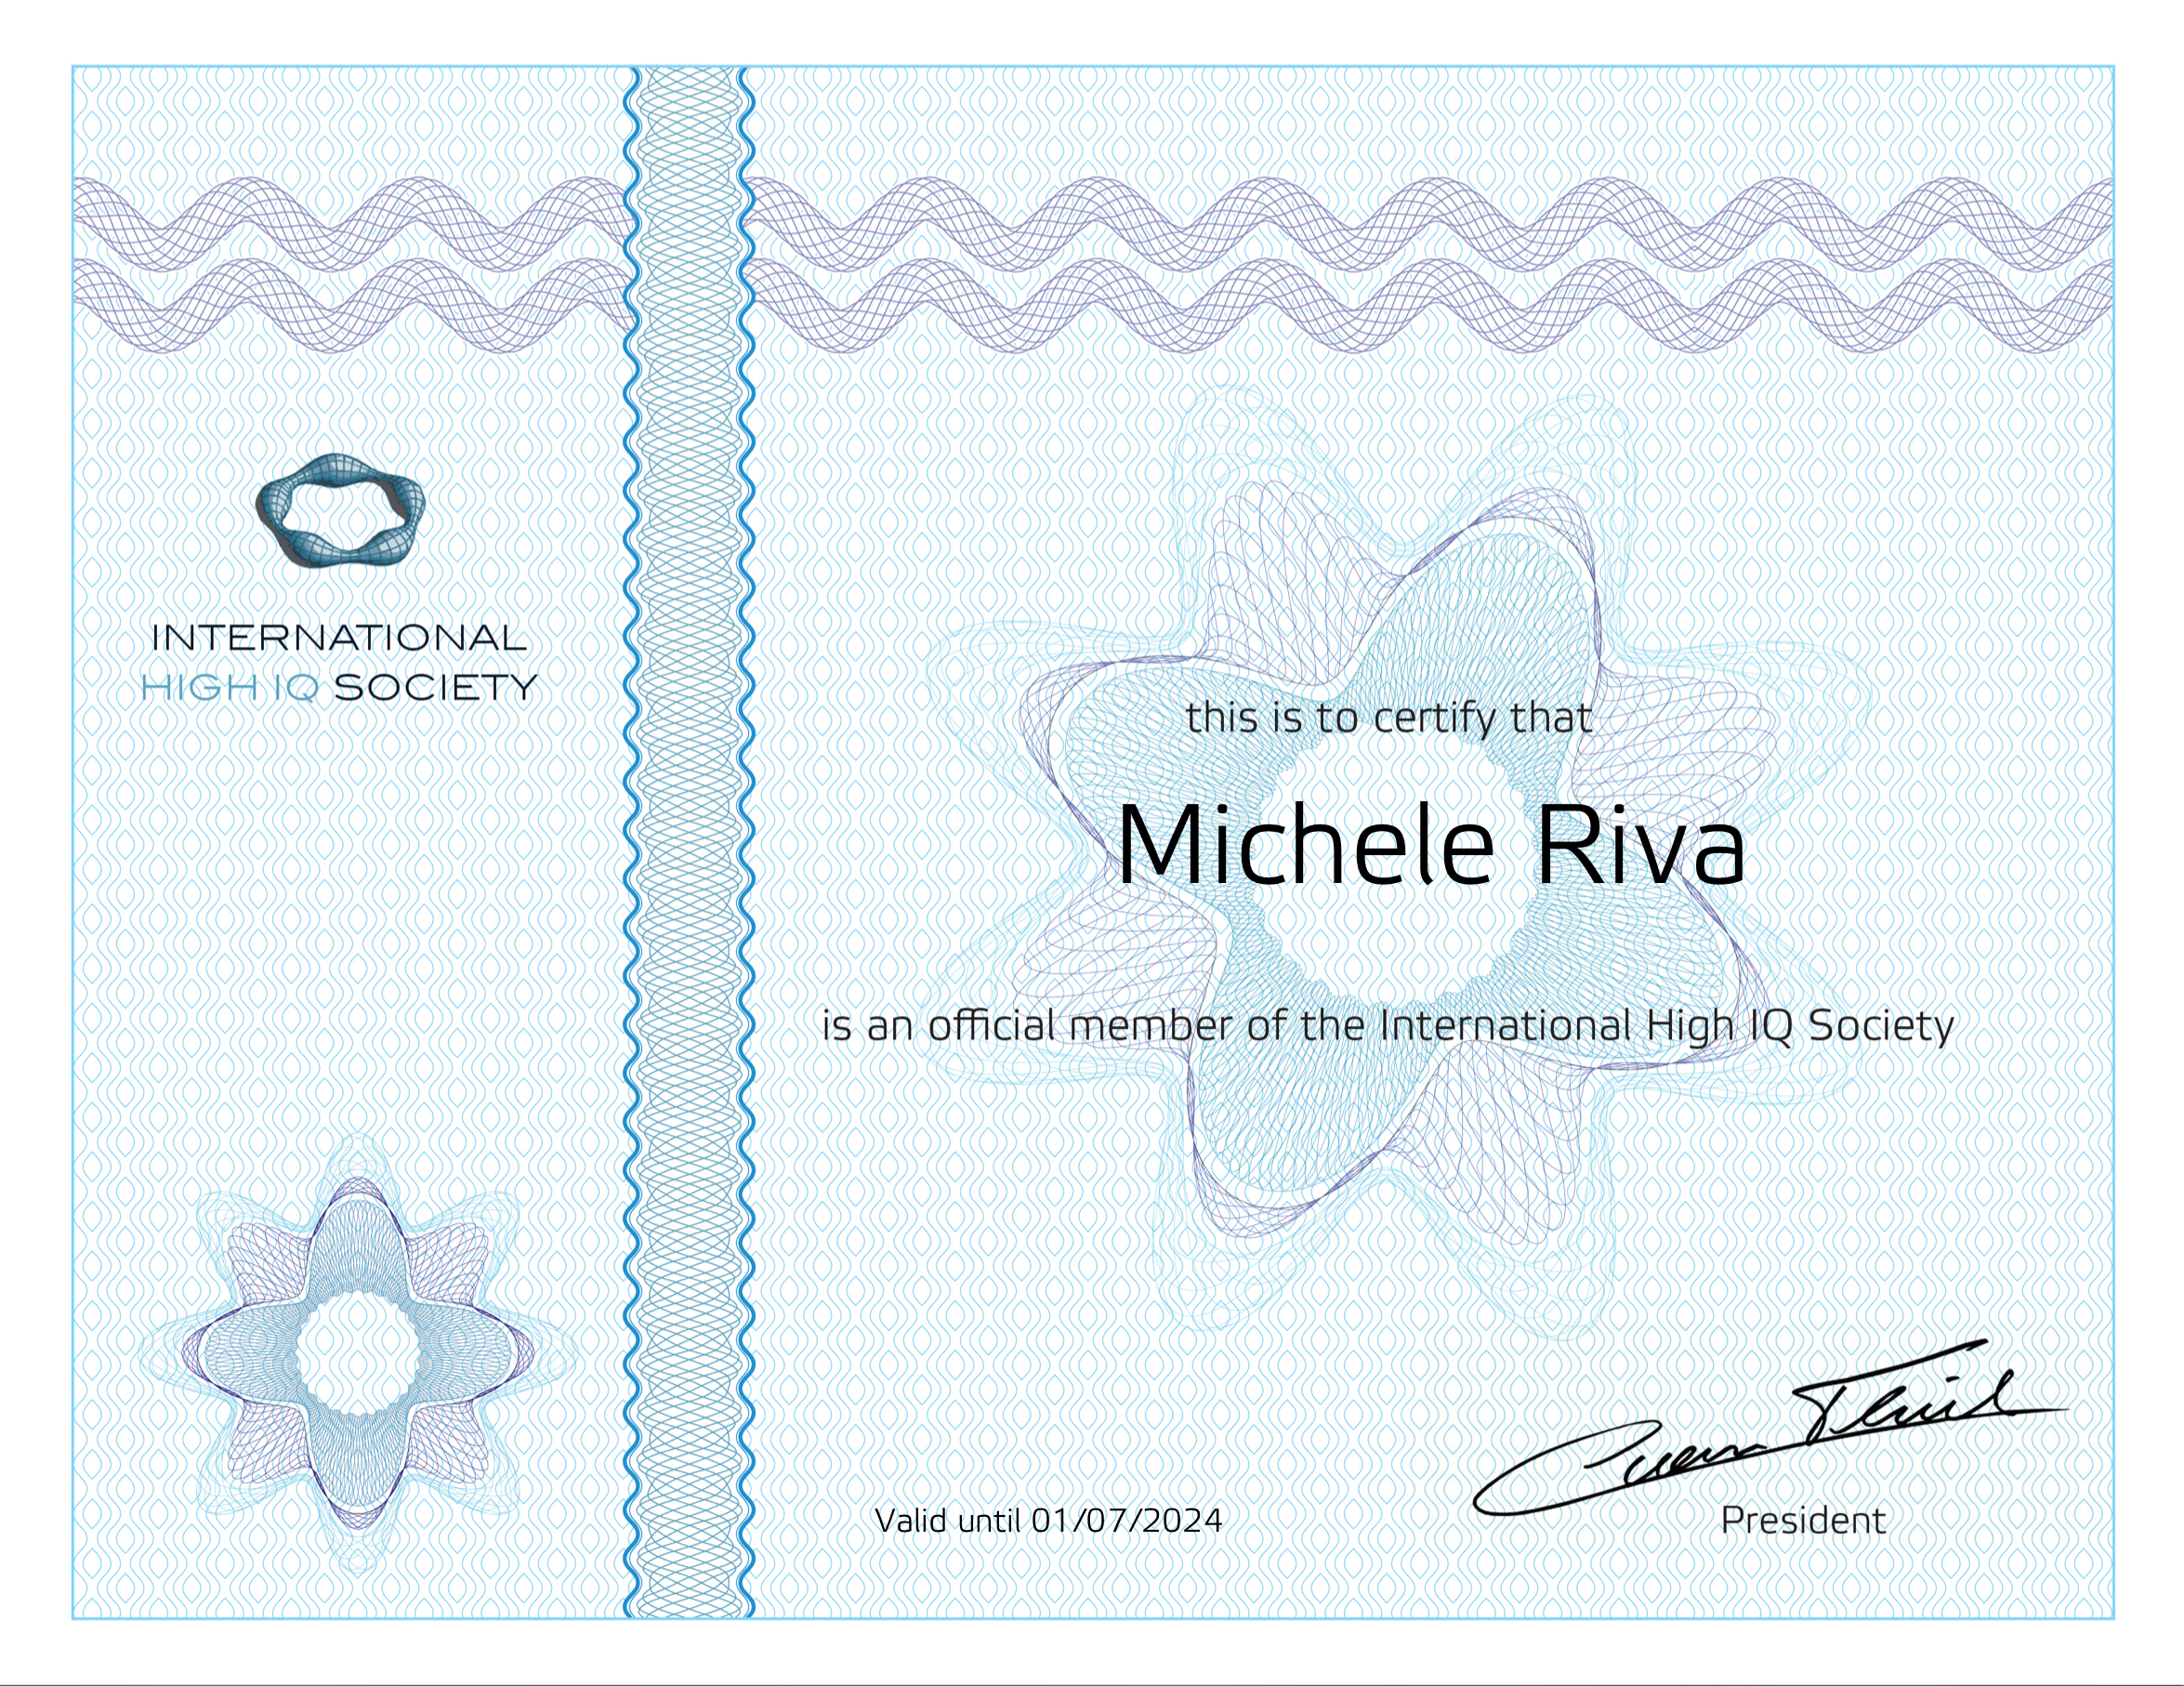 How I joined the International High IQ Society - Michele